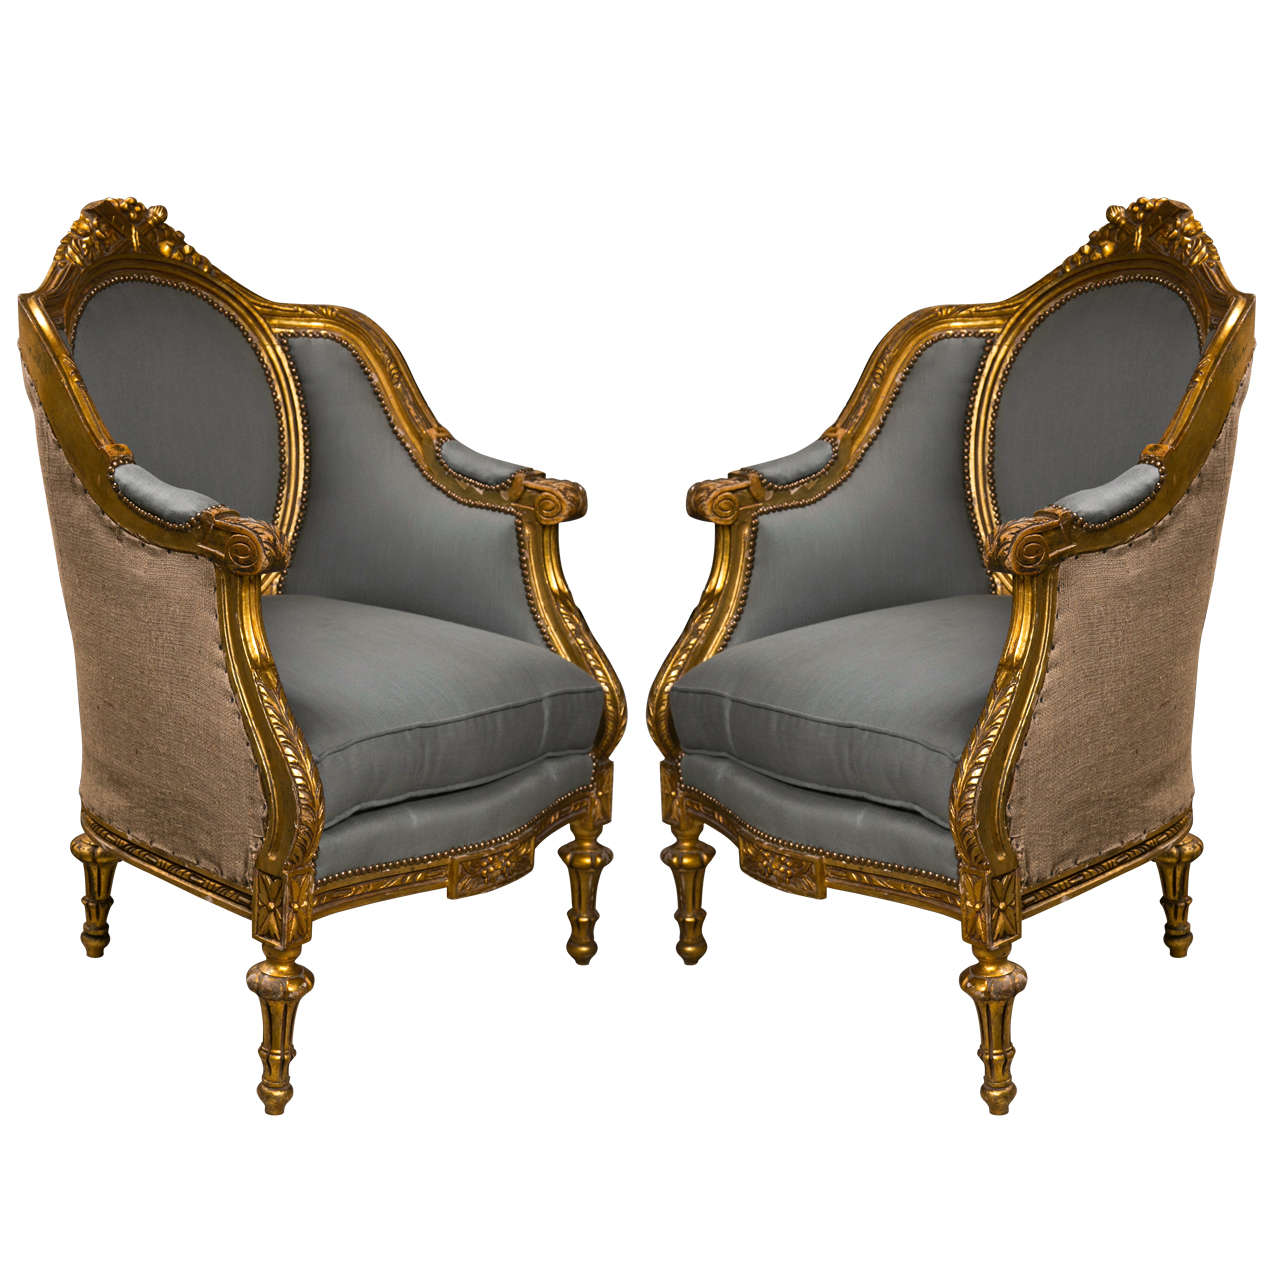 french louis chair vintage designer chairs pair of xvi style bergere at 1stdibs